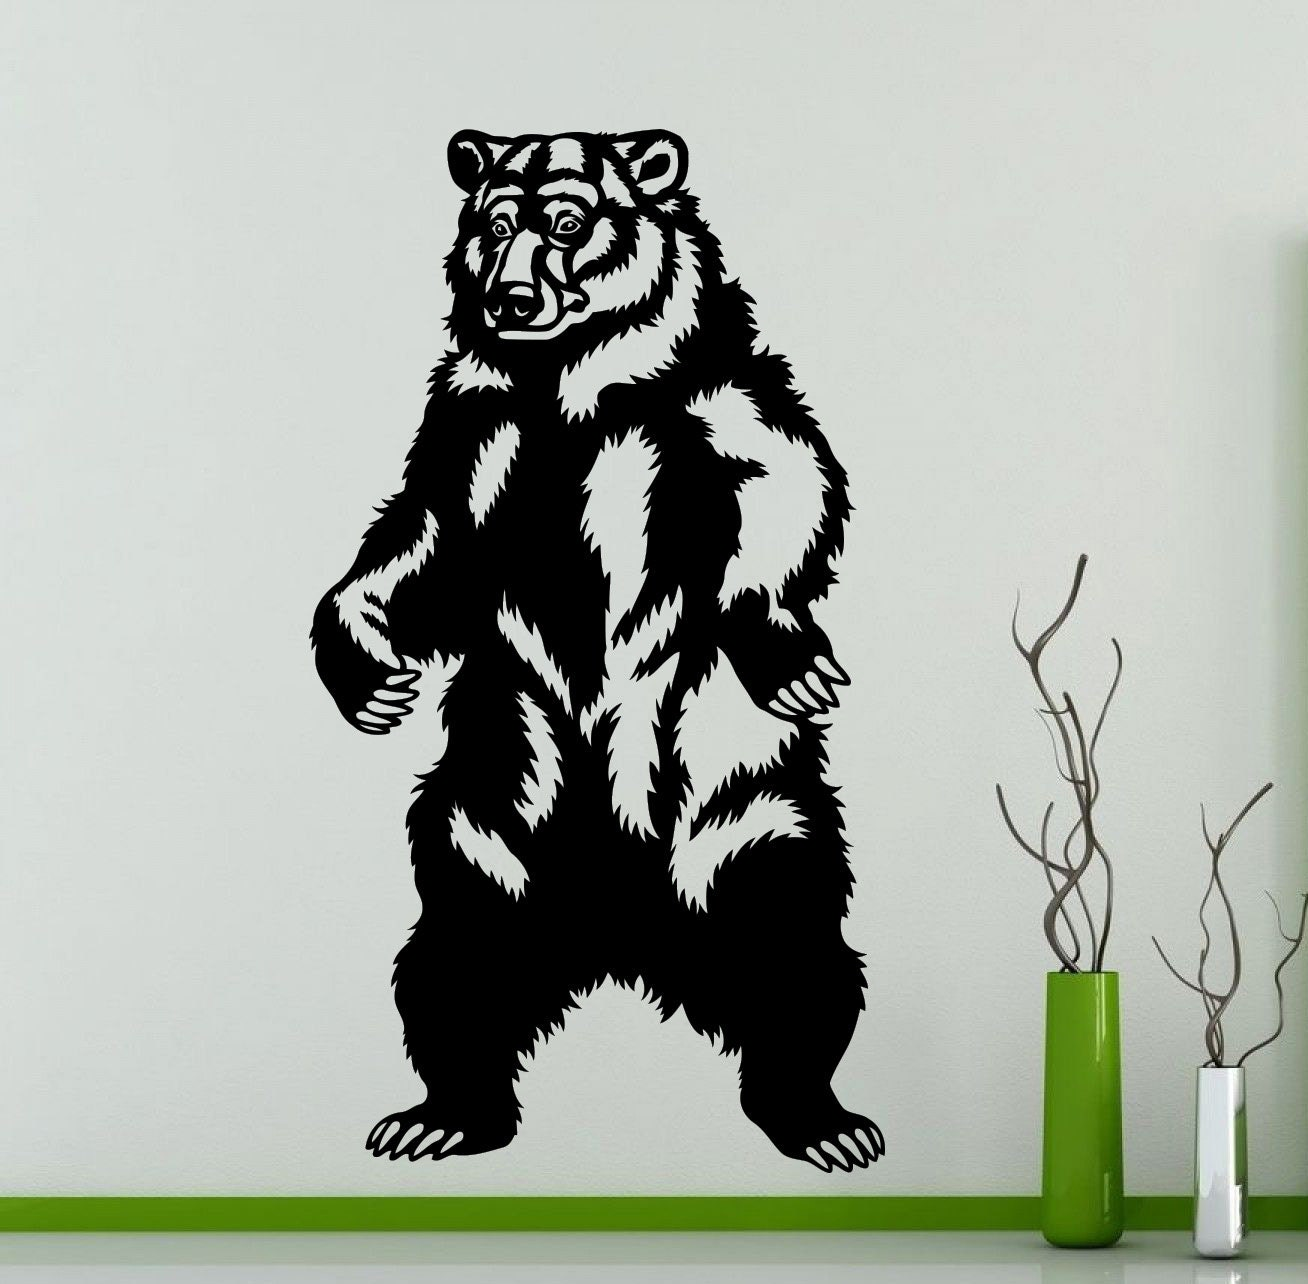 Bear Wall Stickers Bear Standing Wall Sticker Grizzly Vinyl Decal Home Room